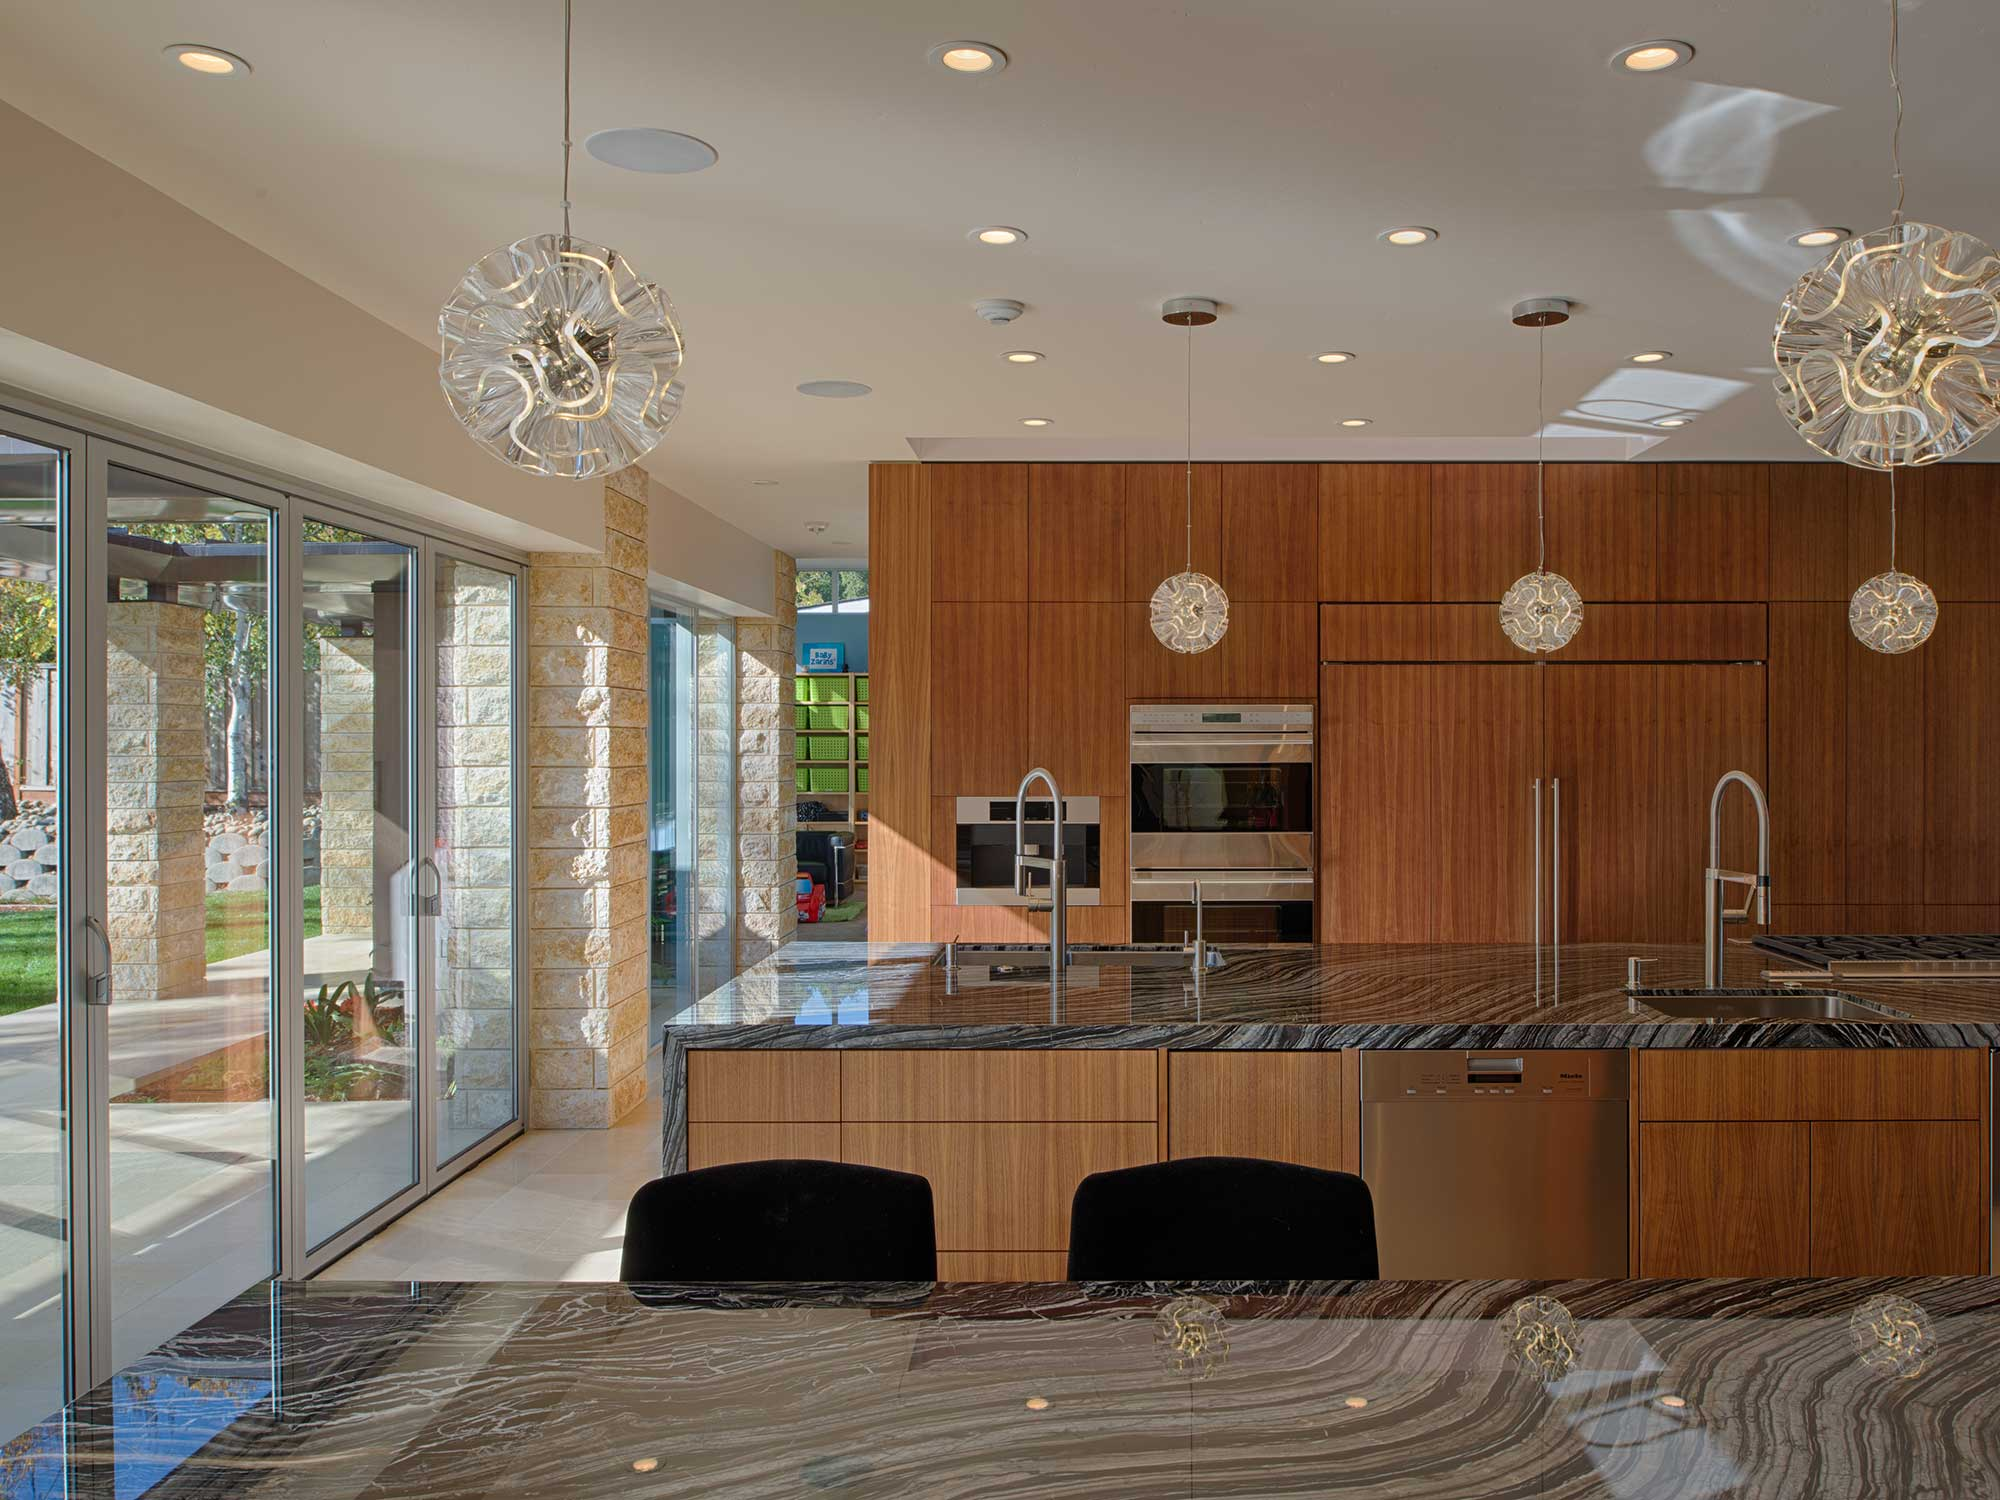 The house is build for entertaining, with a dramatic 14' x 5' kitchen island packed with function and ample storage is hidden away in full height walnut cabinetry.